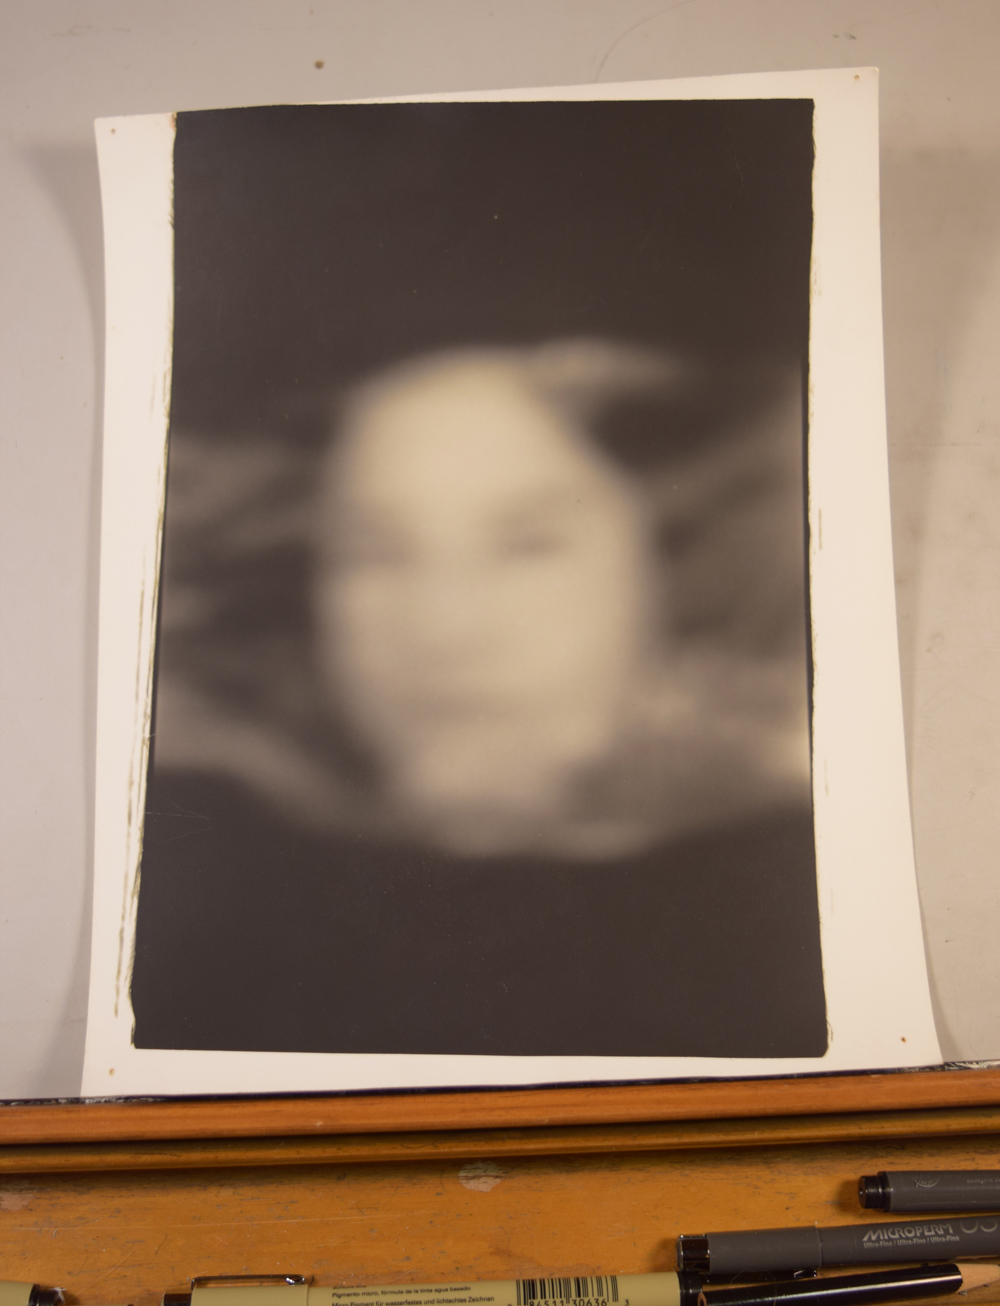 The photograph selected for the cover of Face of Collapse. This was taken with a piece of plastic wrap over Anna's face. I really had no idea what kind of imagery I had until I entered the photo lab and began developing the negatives. This photograph spoke to me right away.